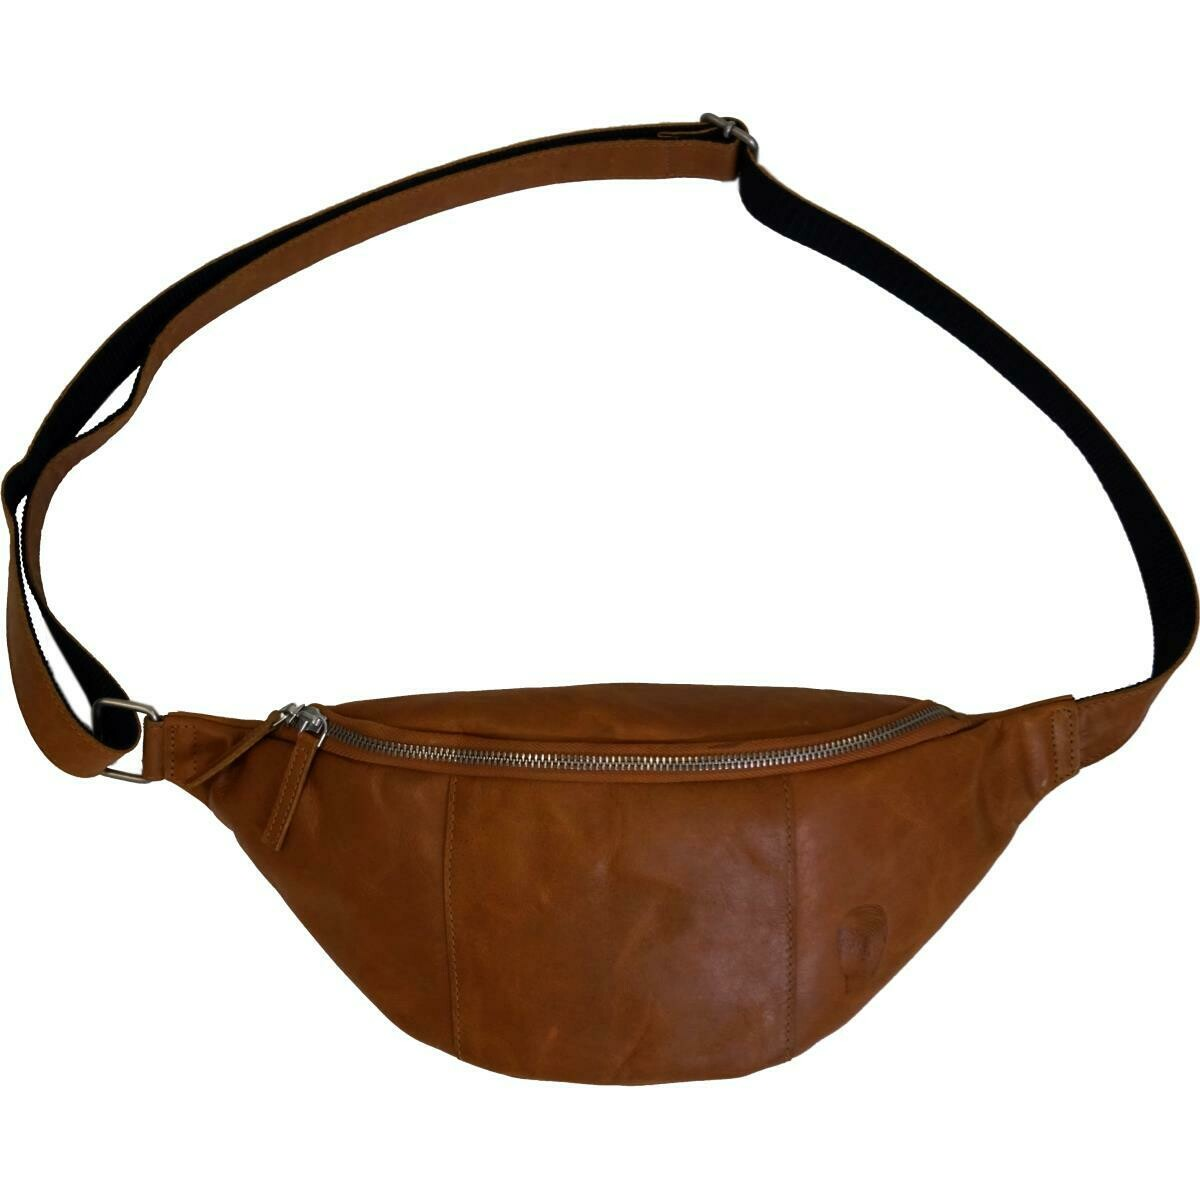 Trademark Living Bumbag - brunt læder - small